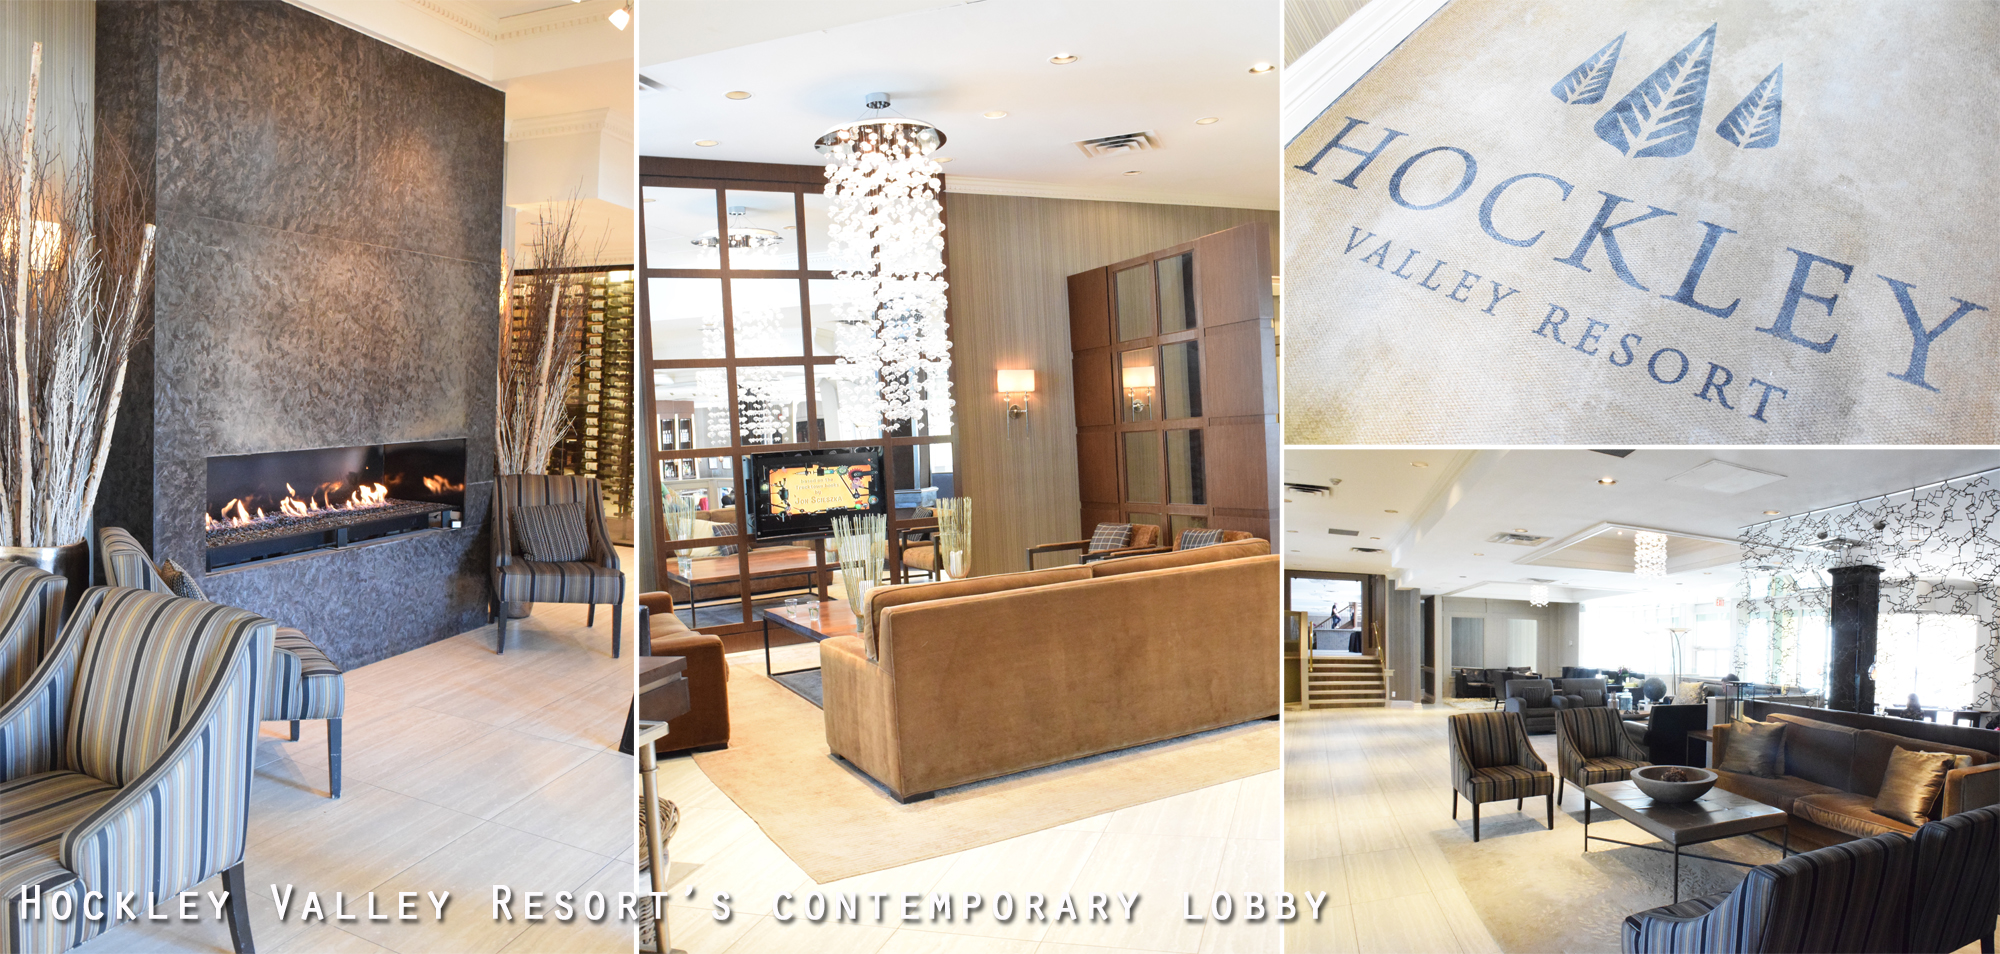 Hockley Valley lobby